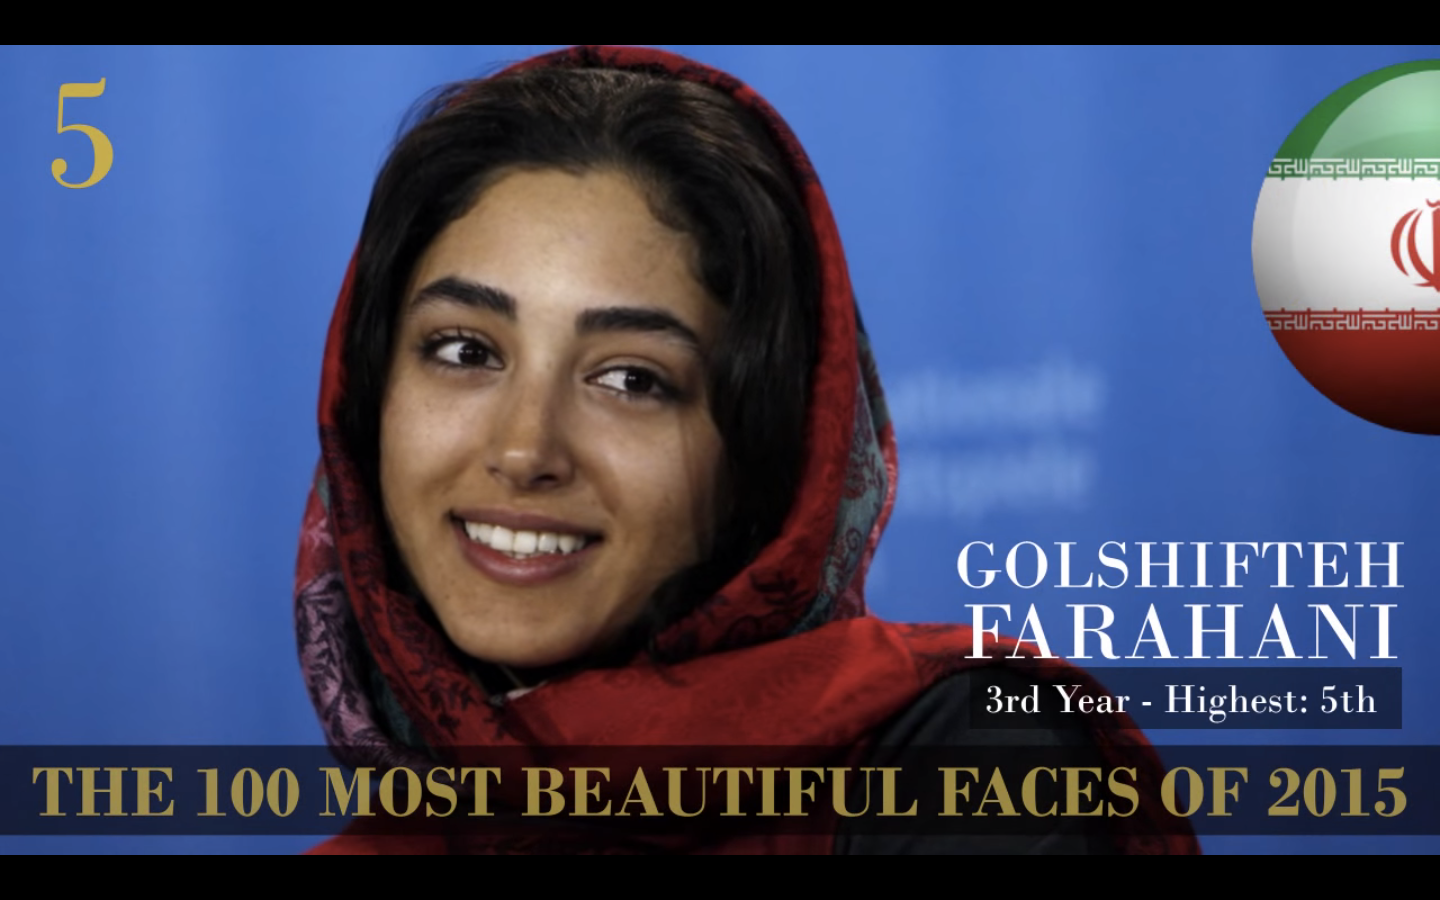 the 100 most beautiful faces of 2015-5 farahani